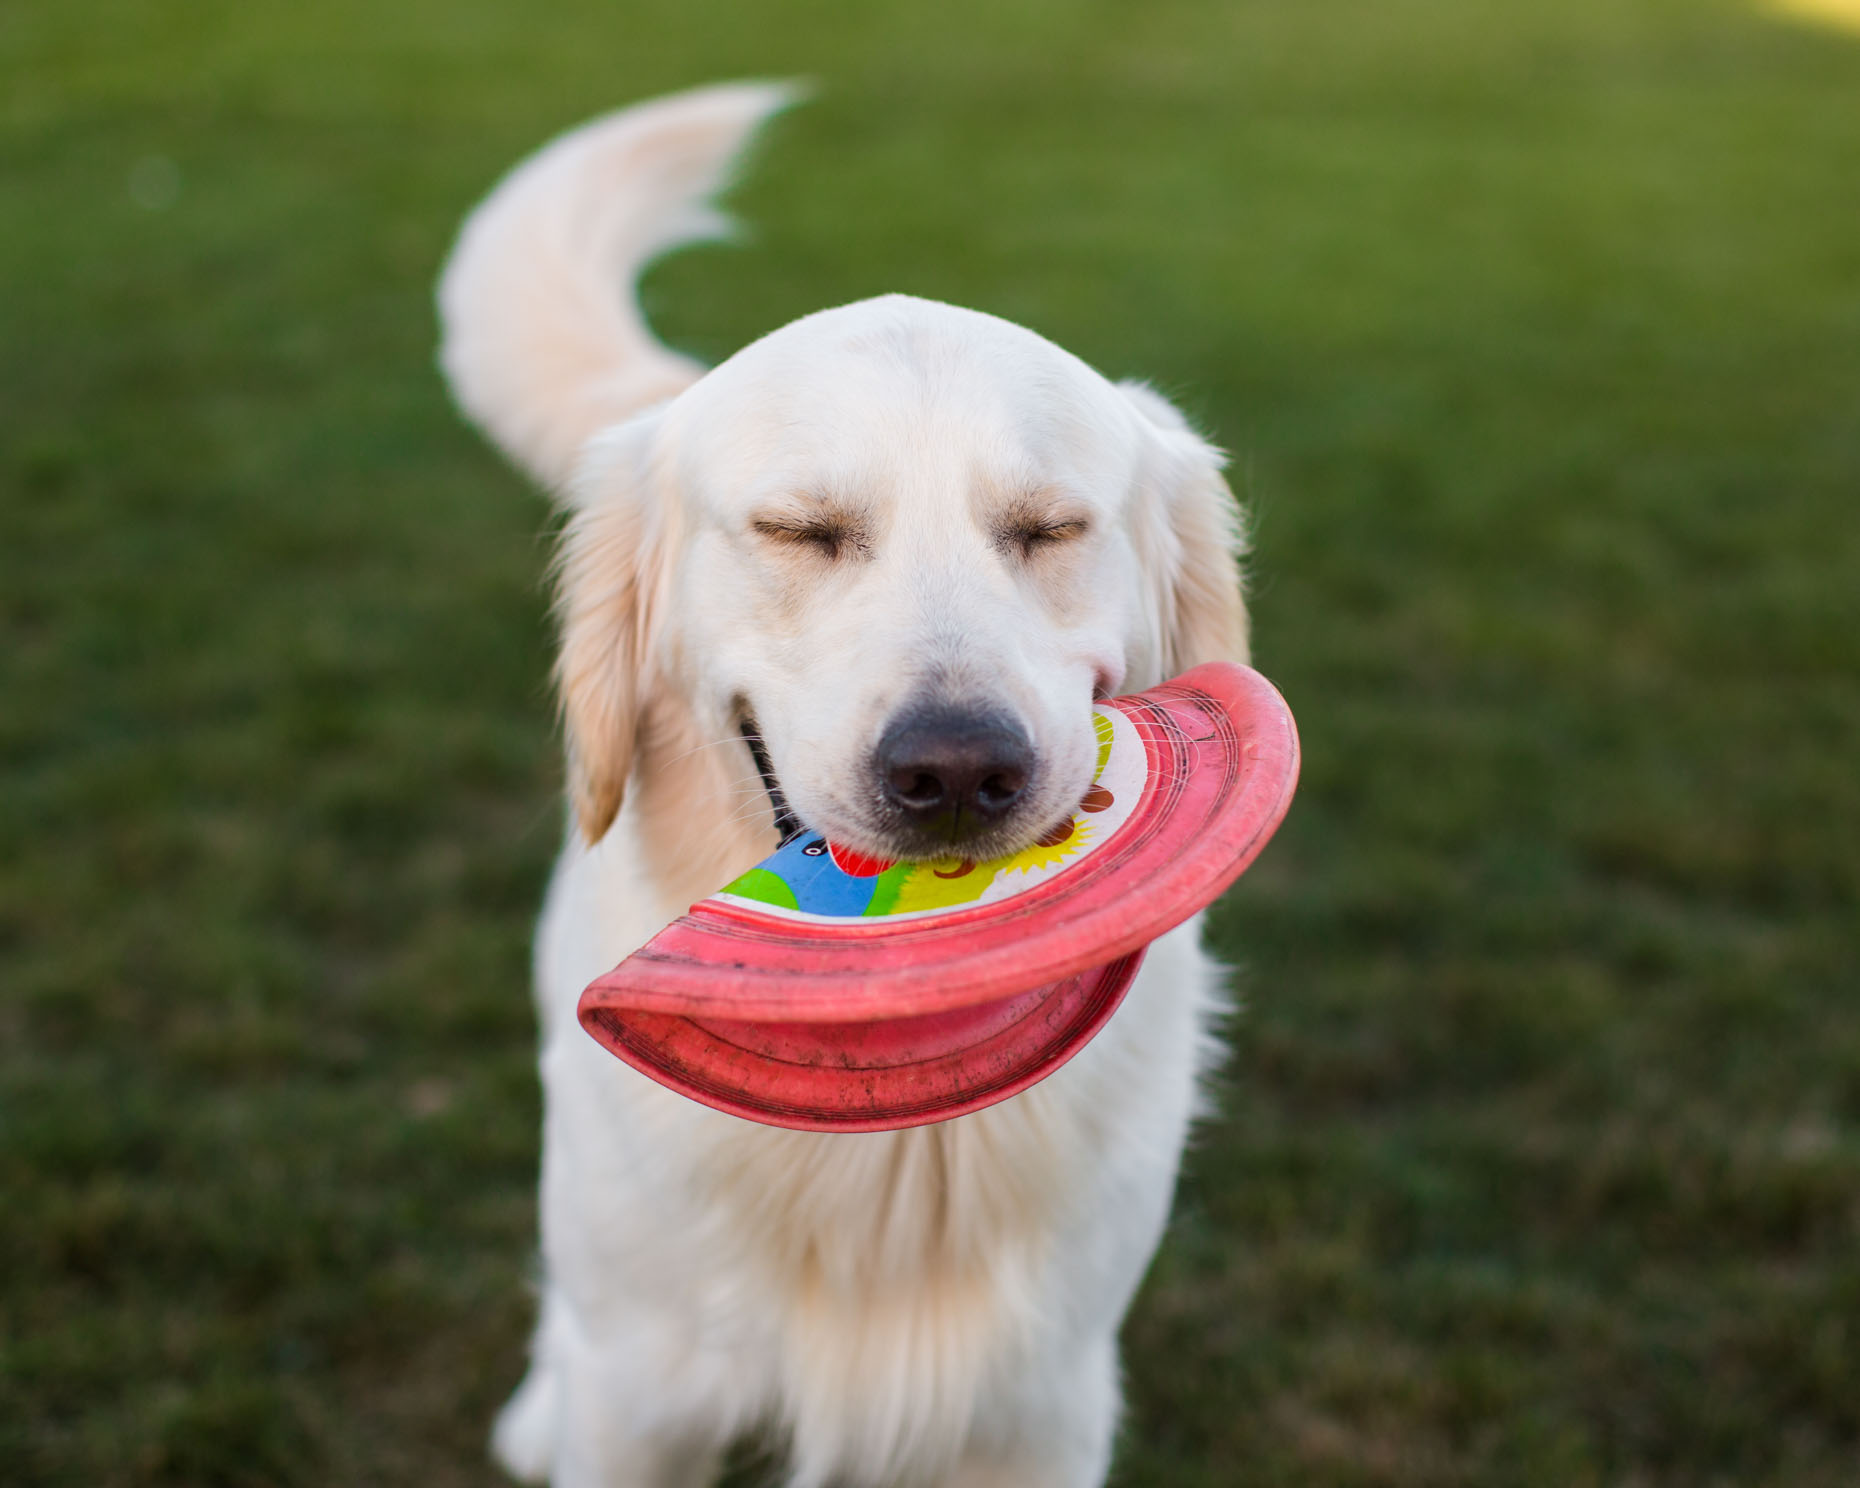 Dog and Pet Photography | Happy Dog with Frisbee by Mark Rogers